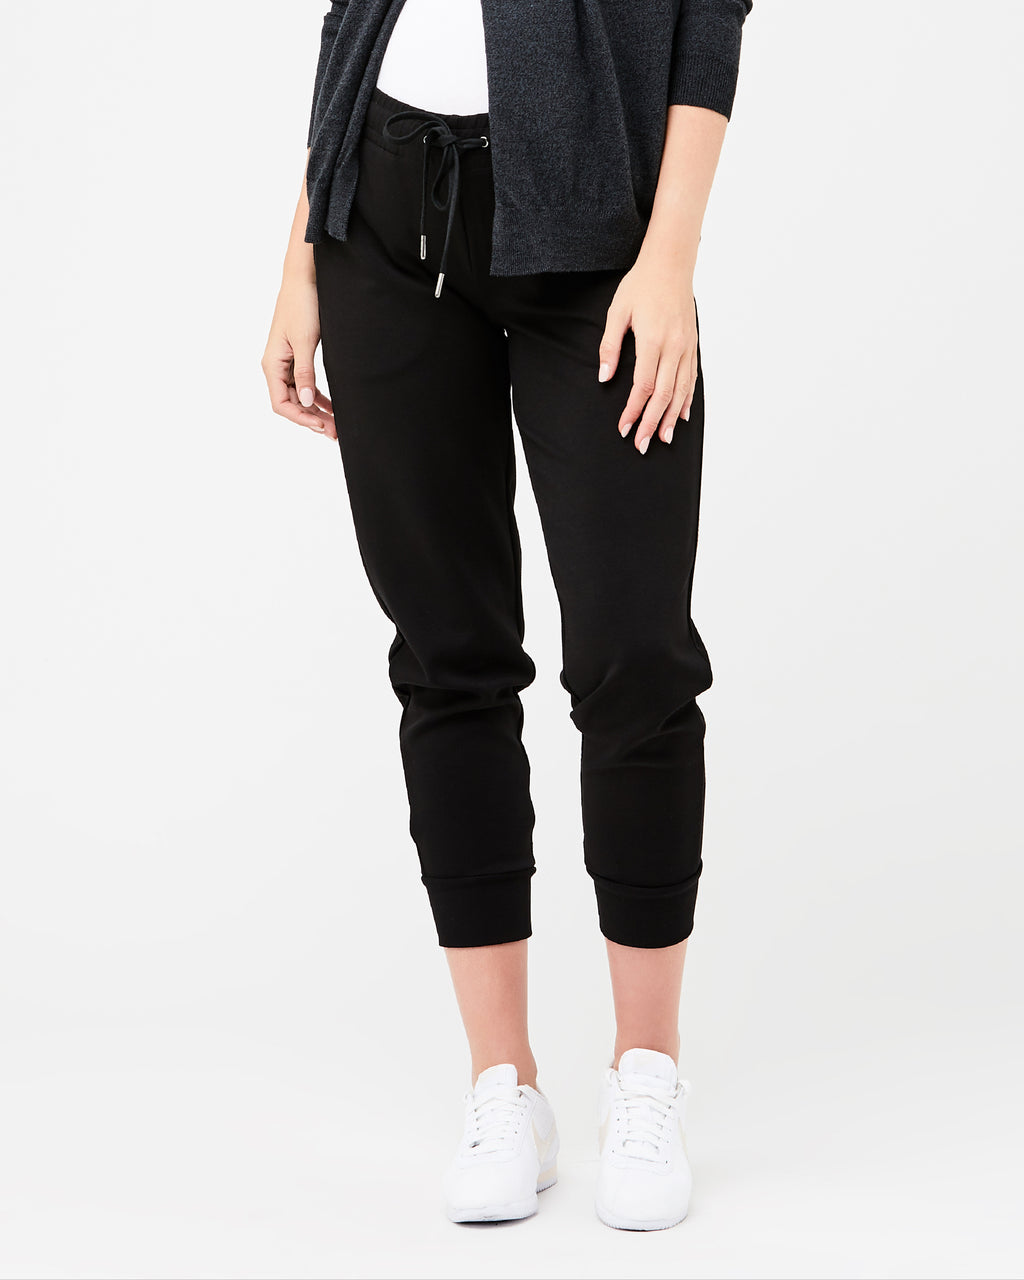 Super Soft Scuba Jogger - Nursing & Maternity Clothes